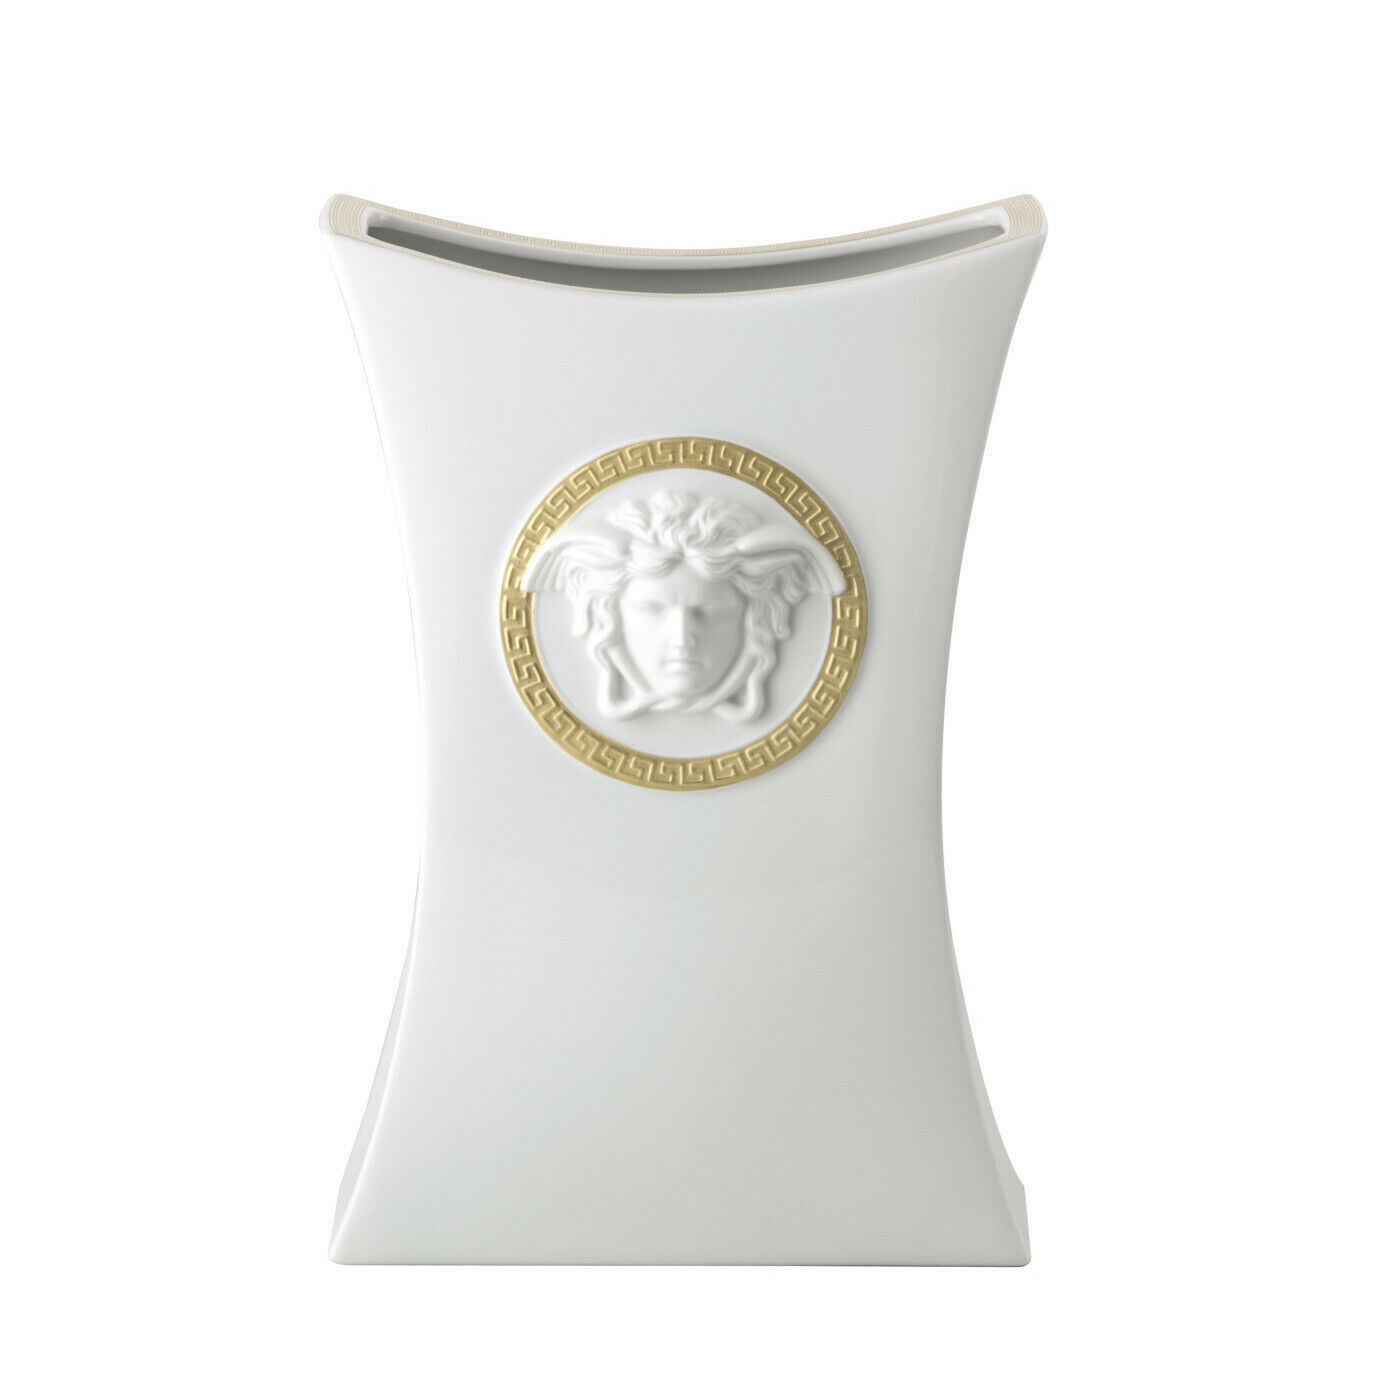 "Primary image for Versace by Rosenthal Decoration series Gorgona Vase 30 cm/11.8"" inches"